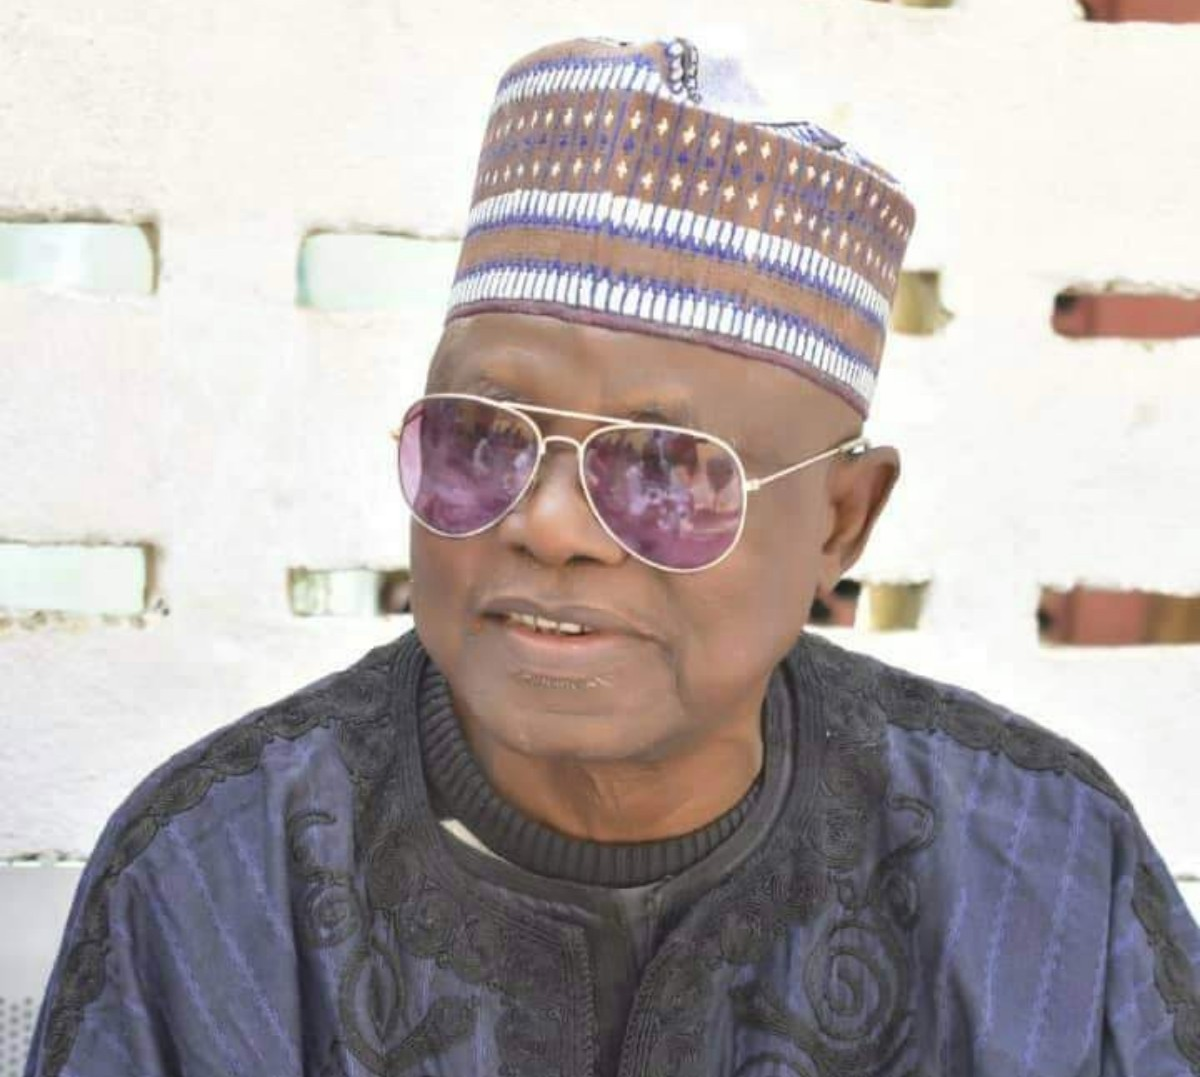 Shehu Atiku: Tribute to an incorruptible judge